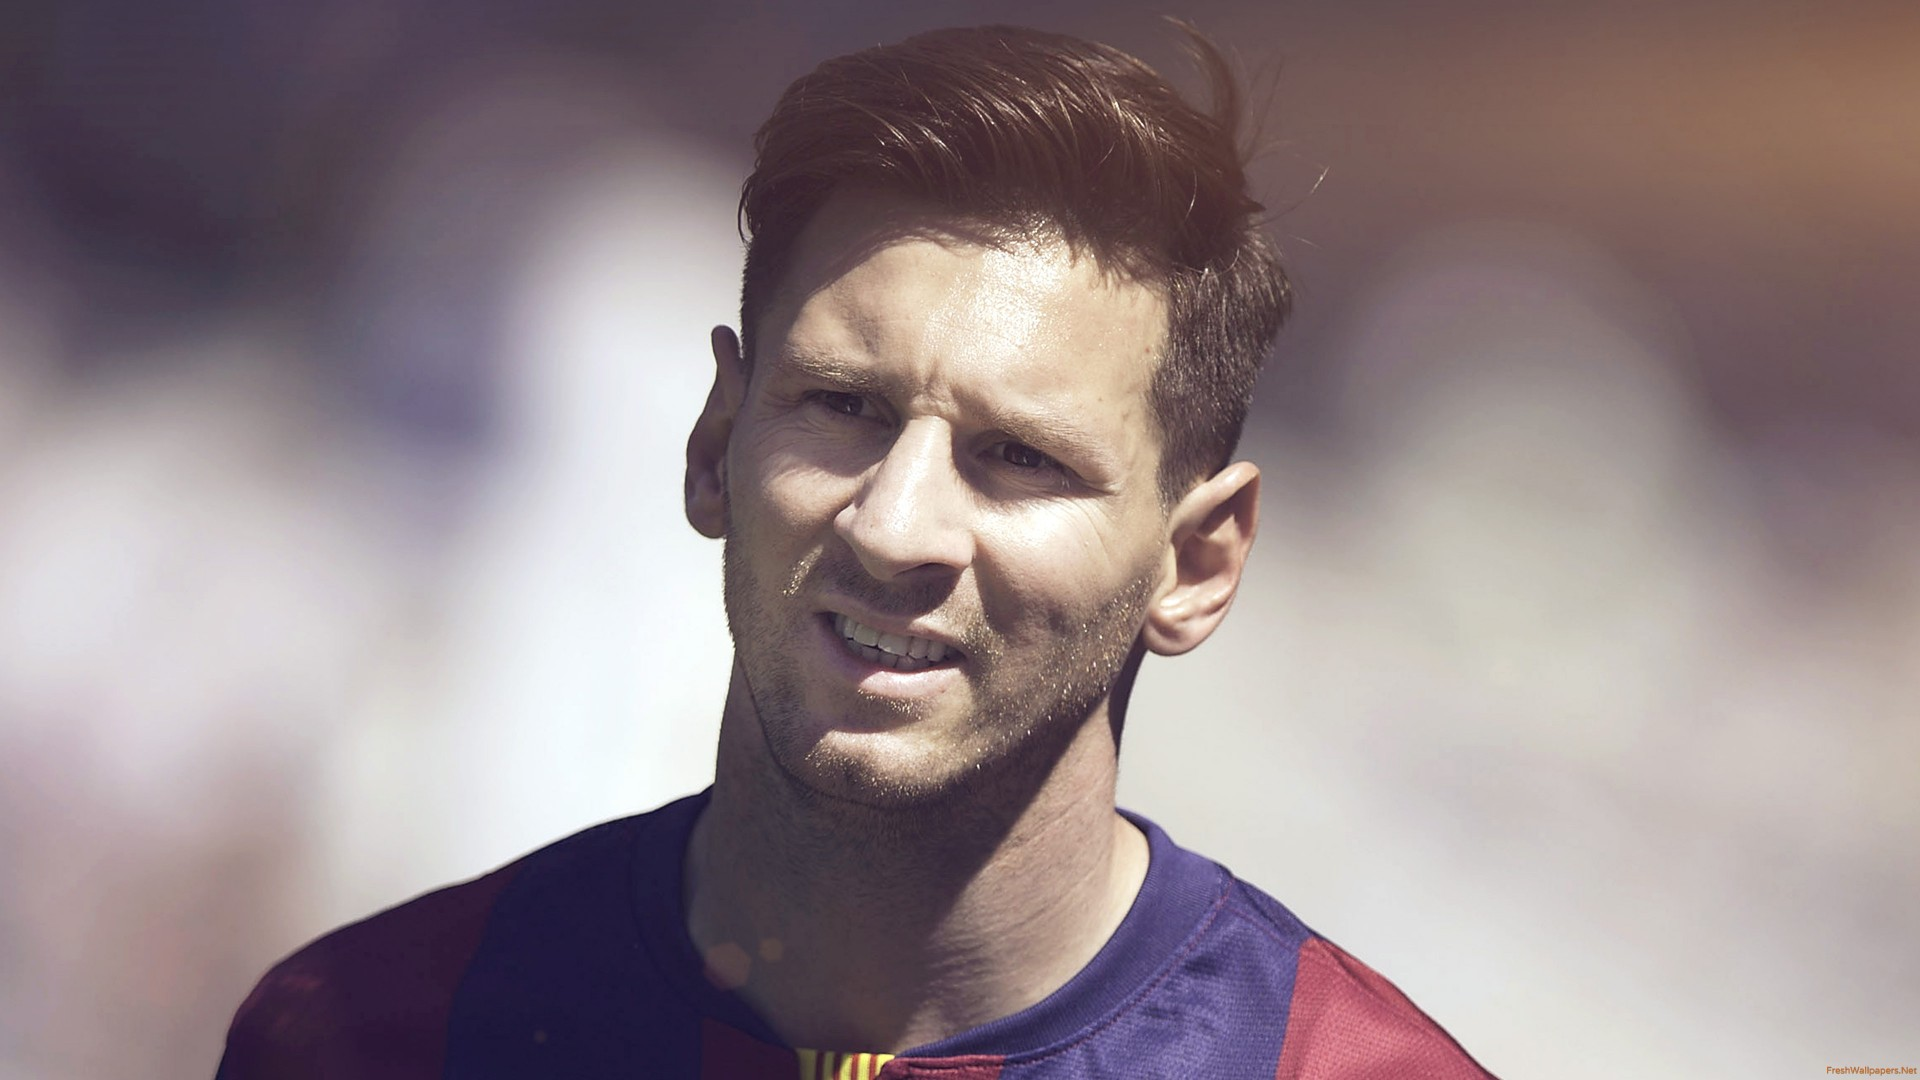 M Lionel Messi Wallpapers HD Free Download for Desktop 1920x1080